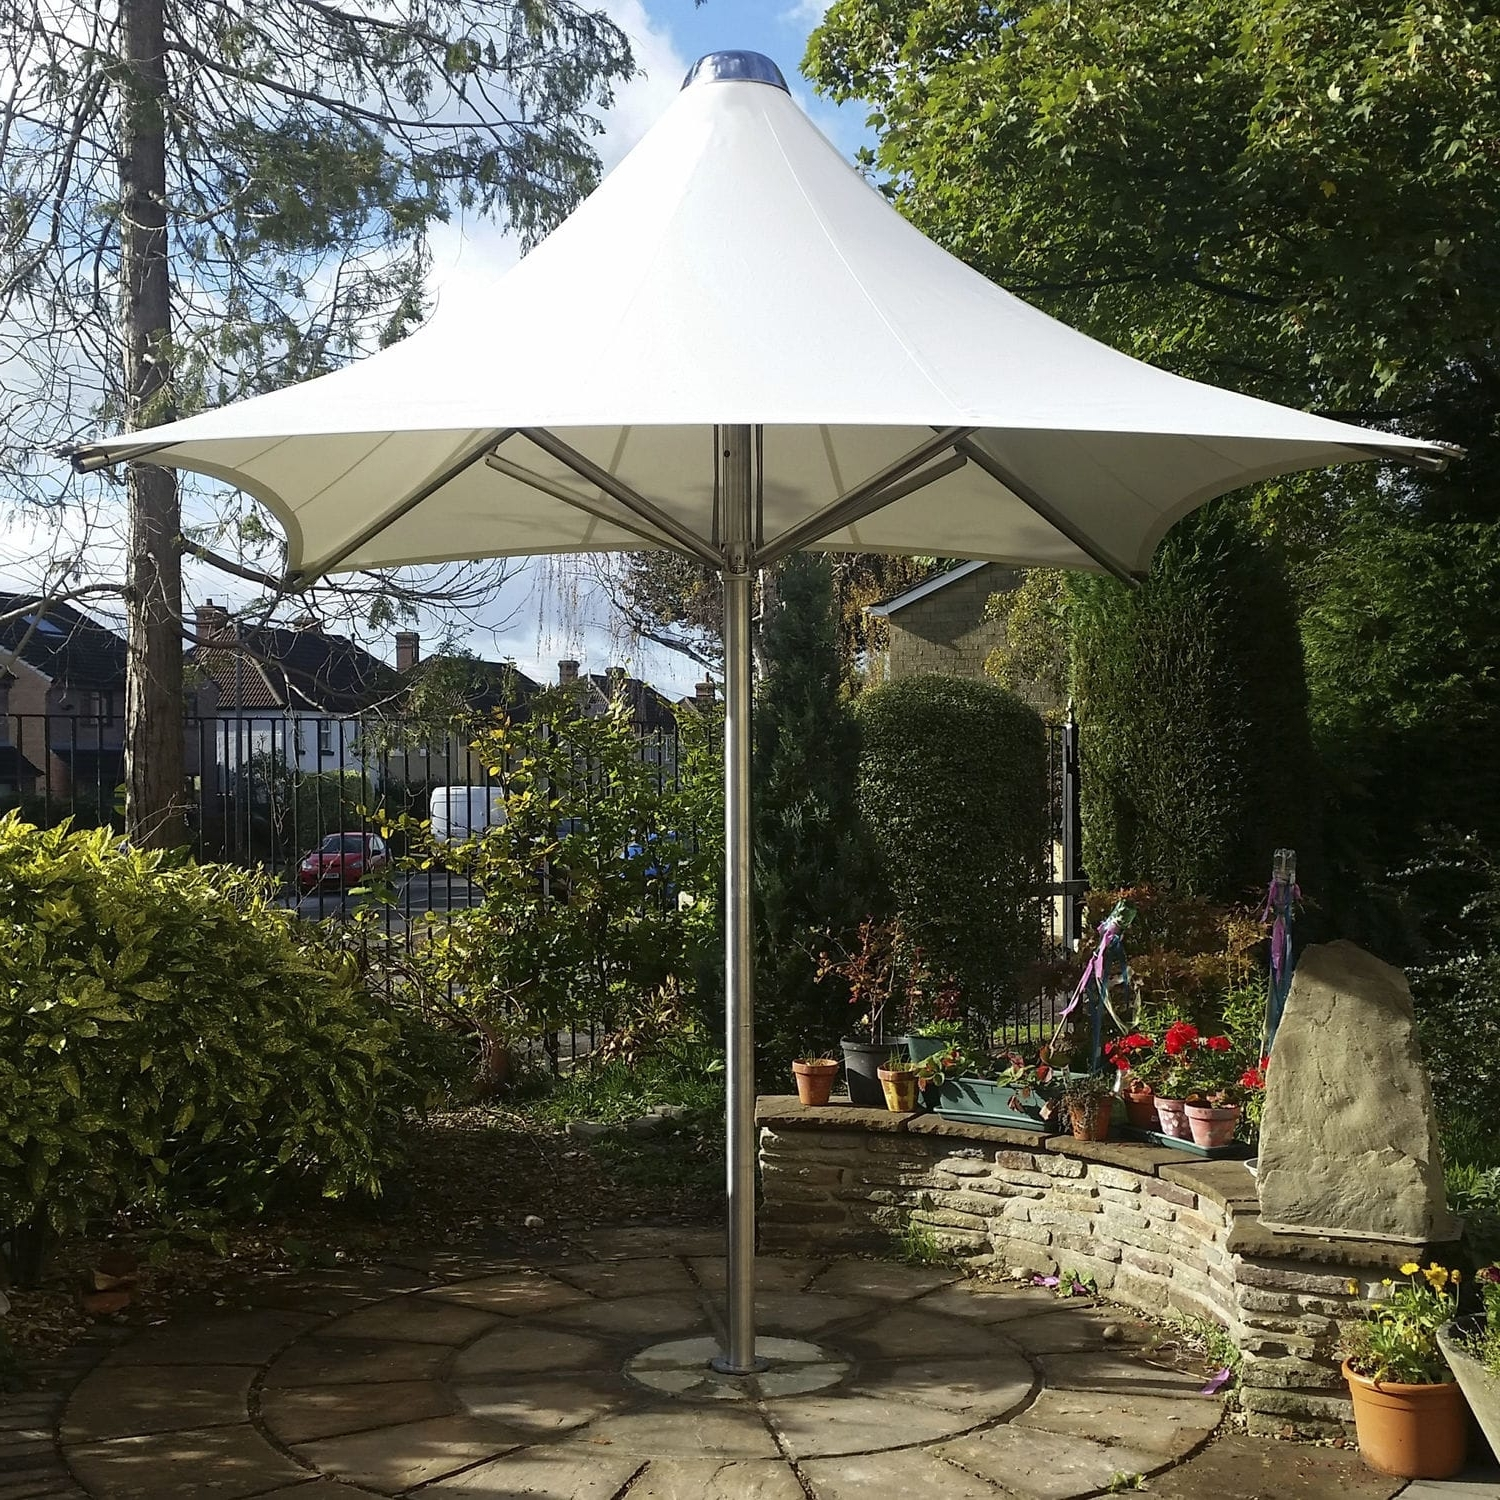 Commercial Patio Umbrella / Stainless Steel / Pvc / Wind Resistant In Recent Wind Resistant Patio Umbrellas (View 6 of 20)